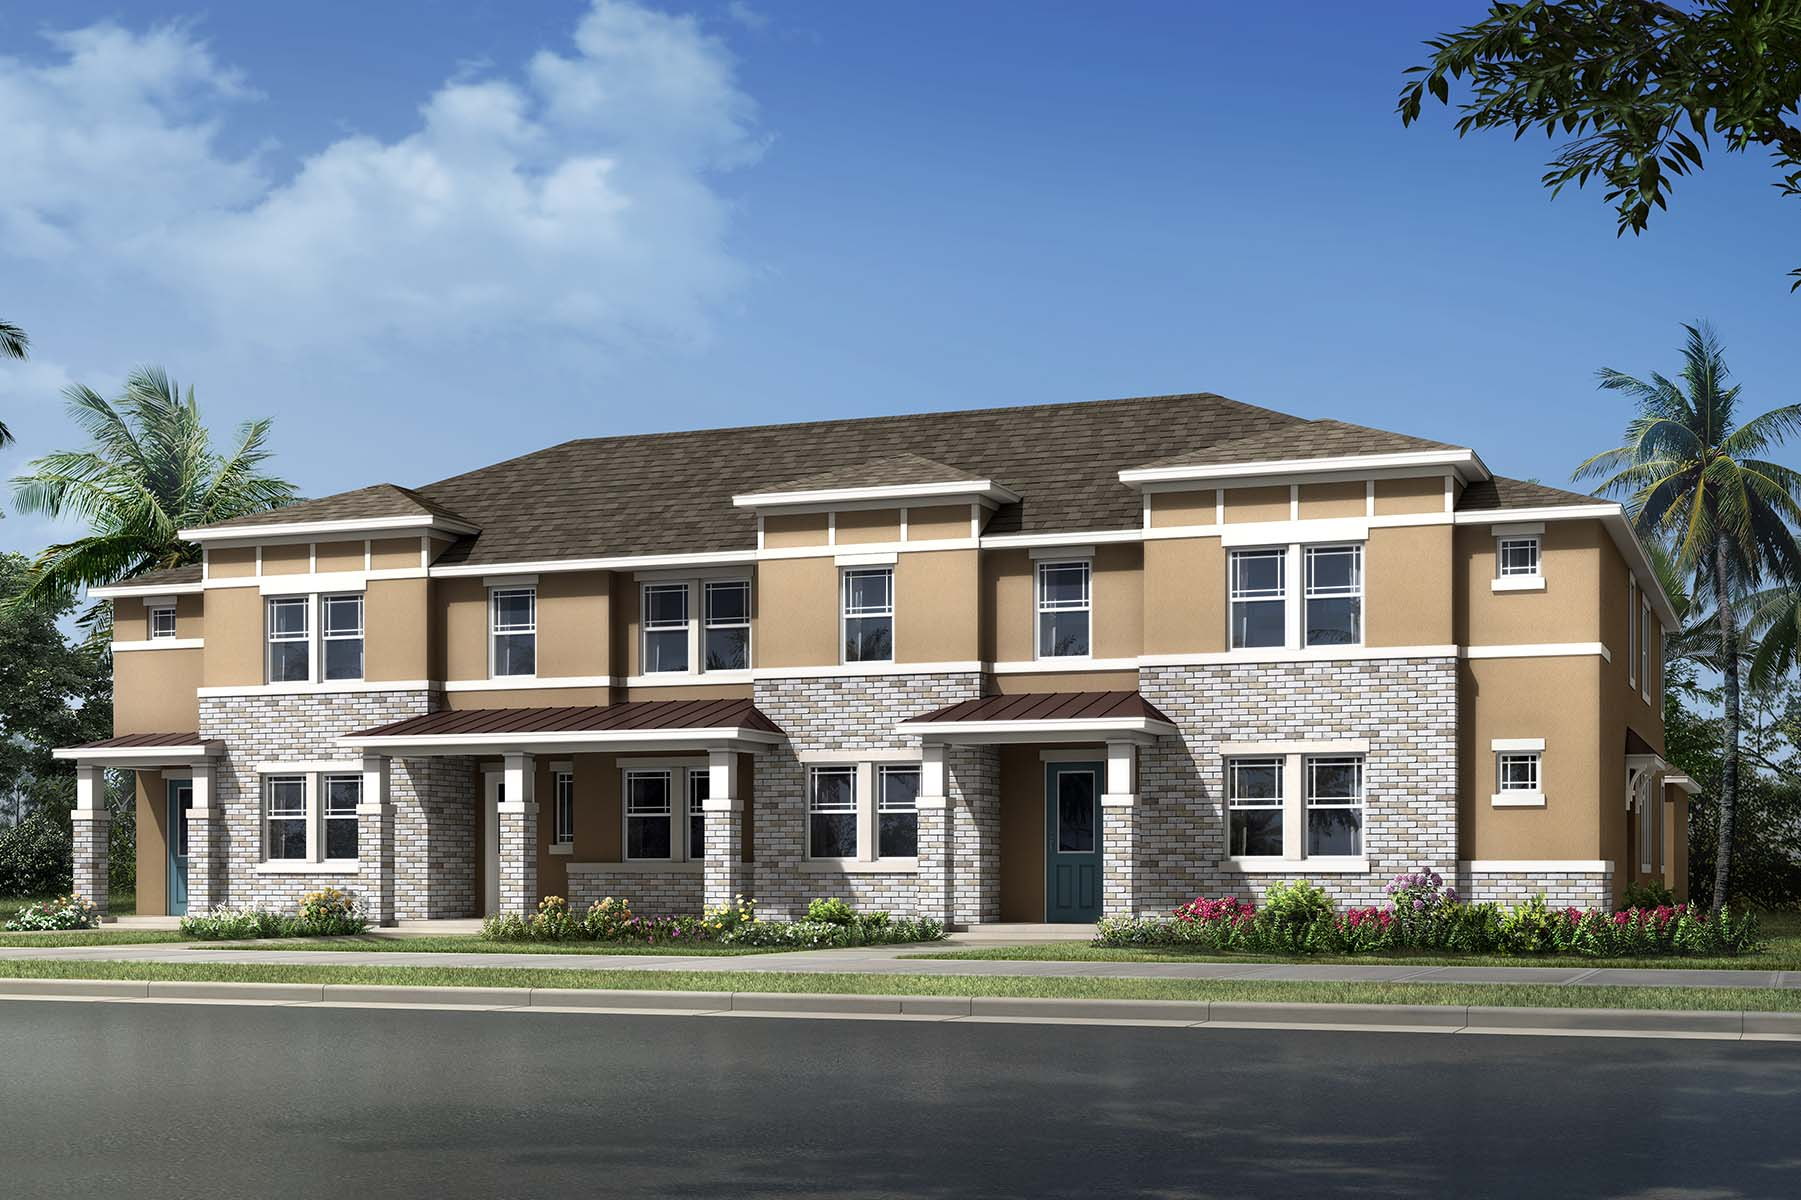 Arcadia Plan TownHomes at Hawksmoor in Winter Garden Florida by Mattamy Homes